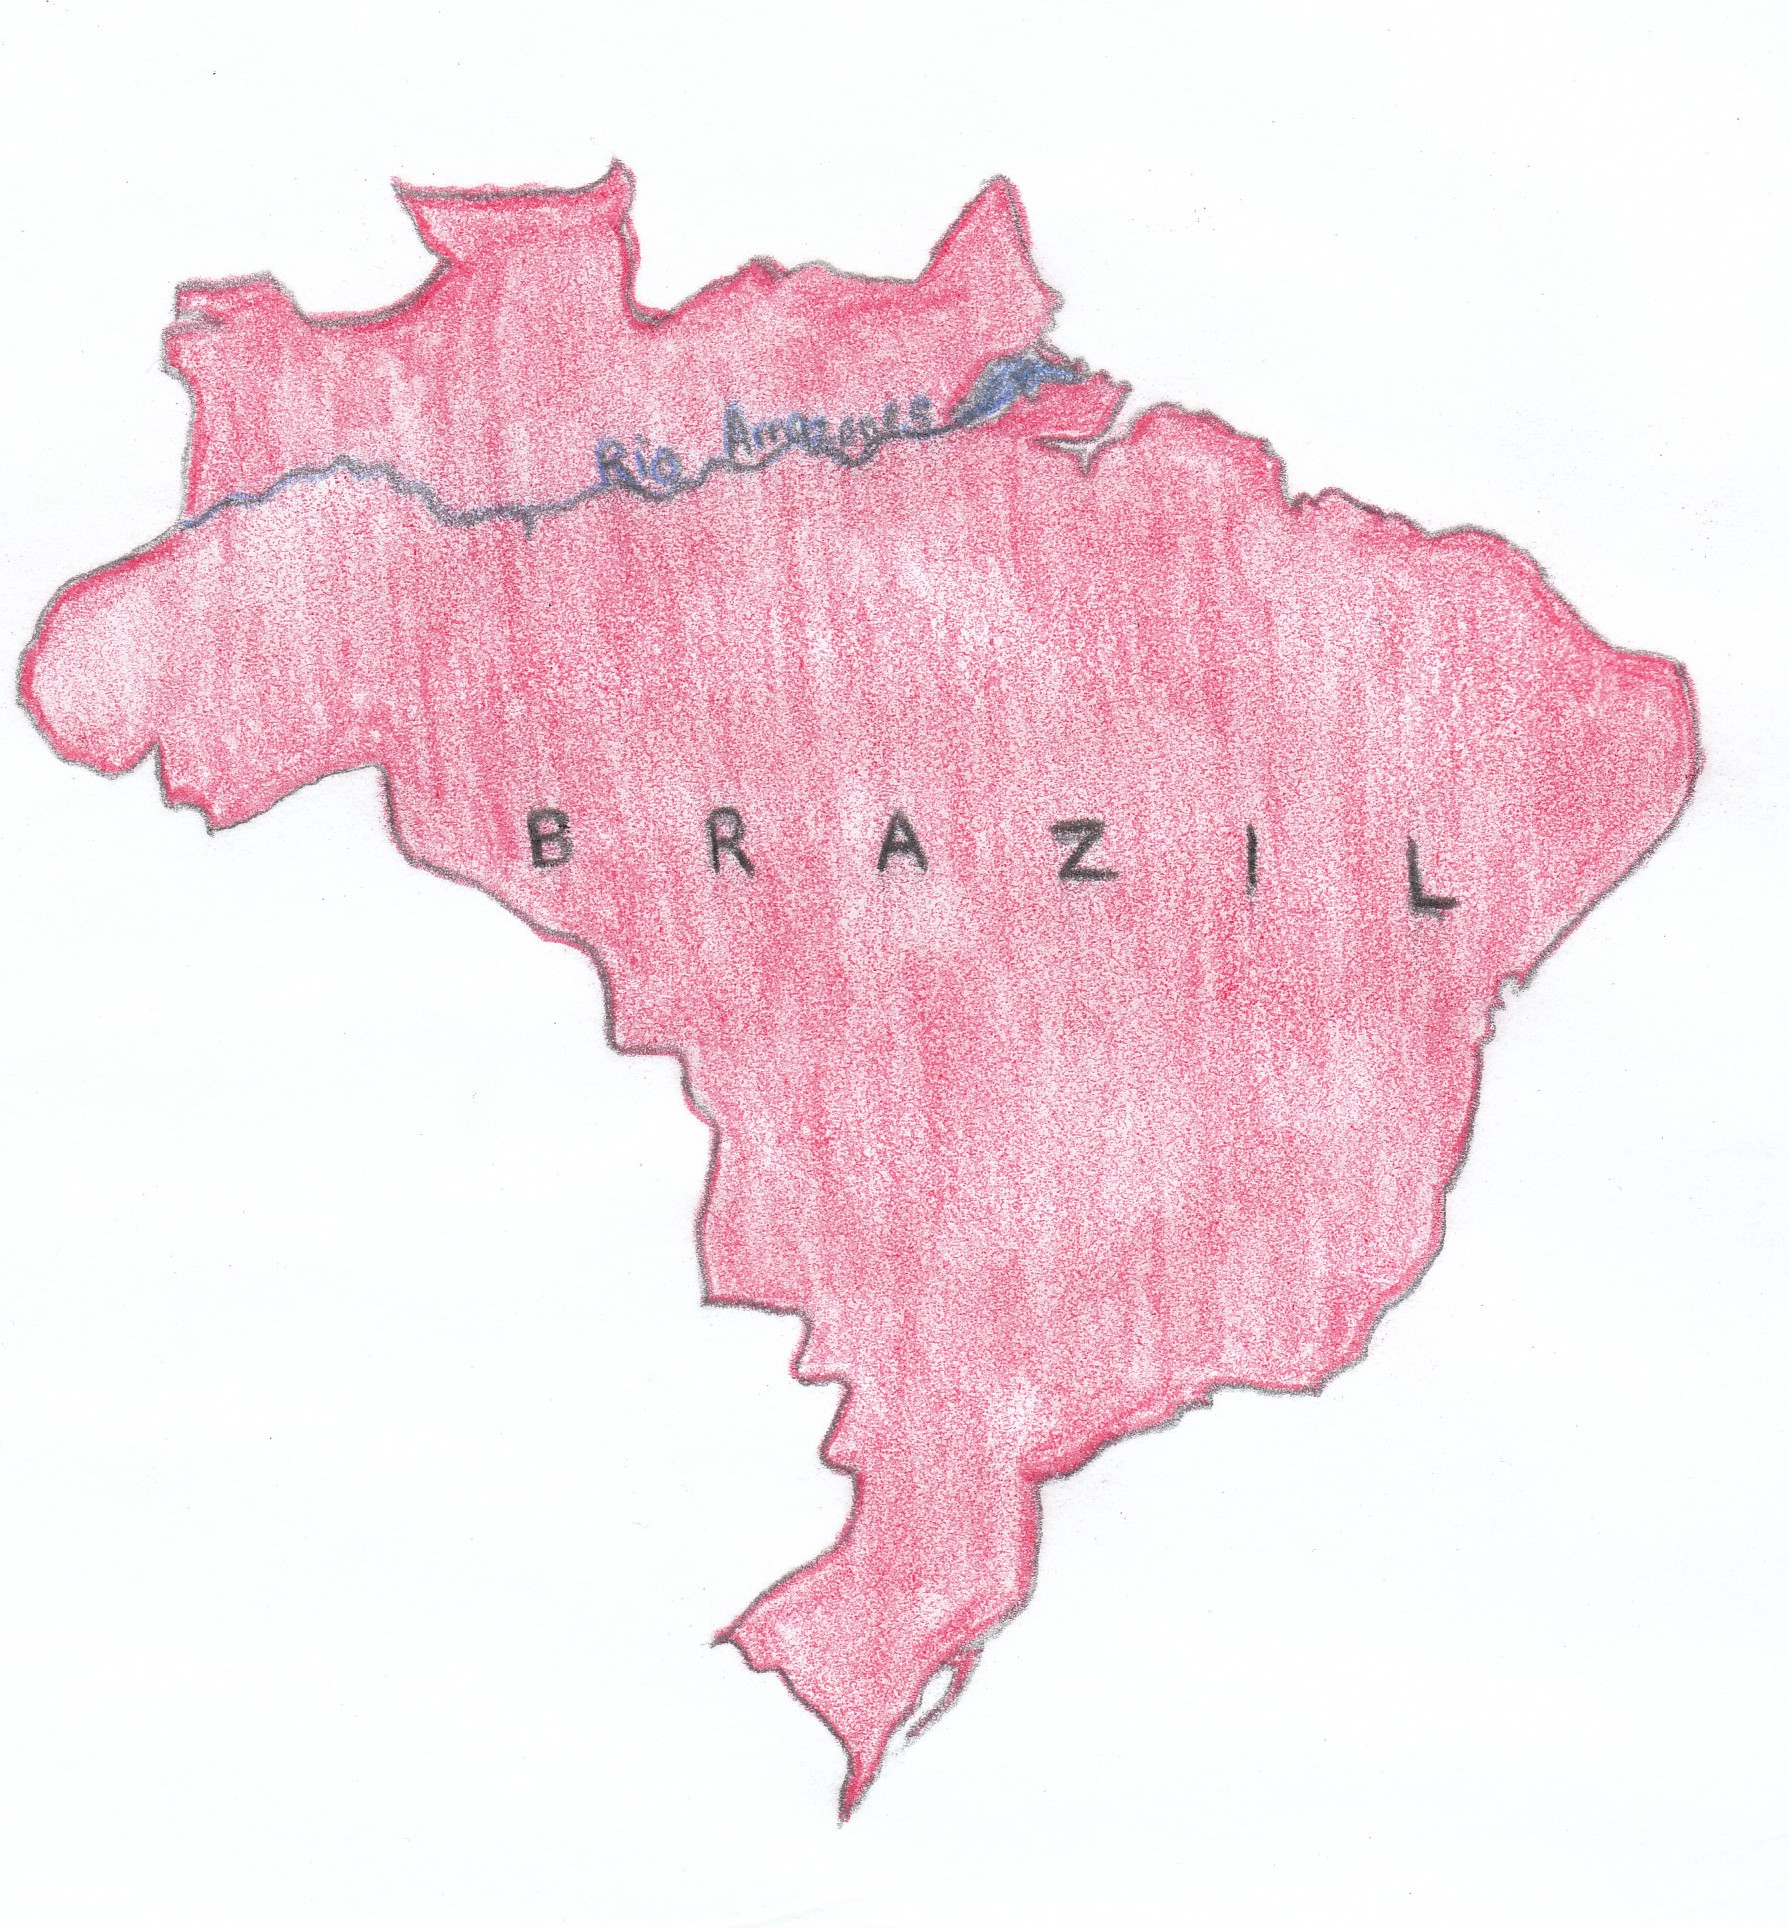 Country of Brazil